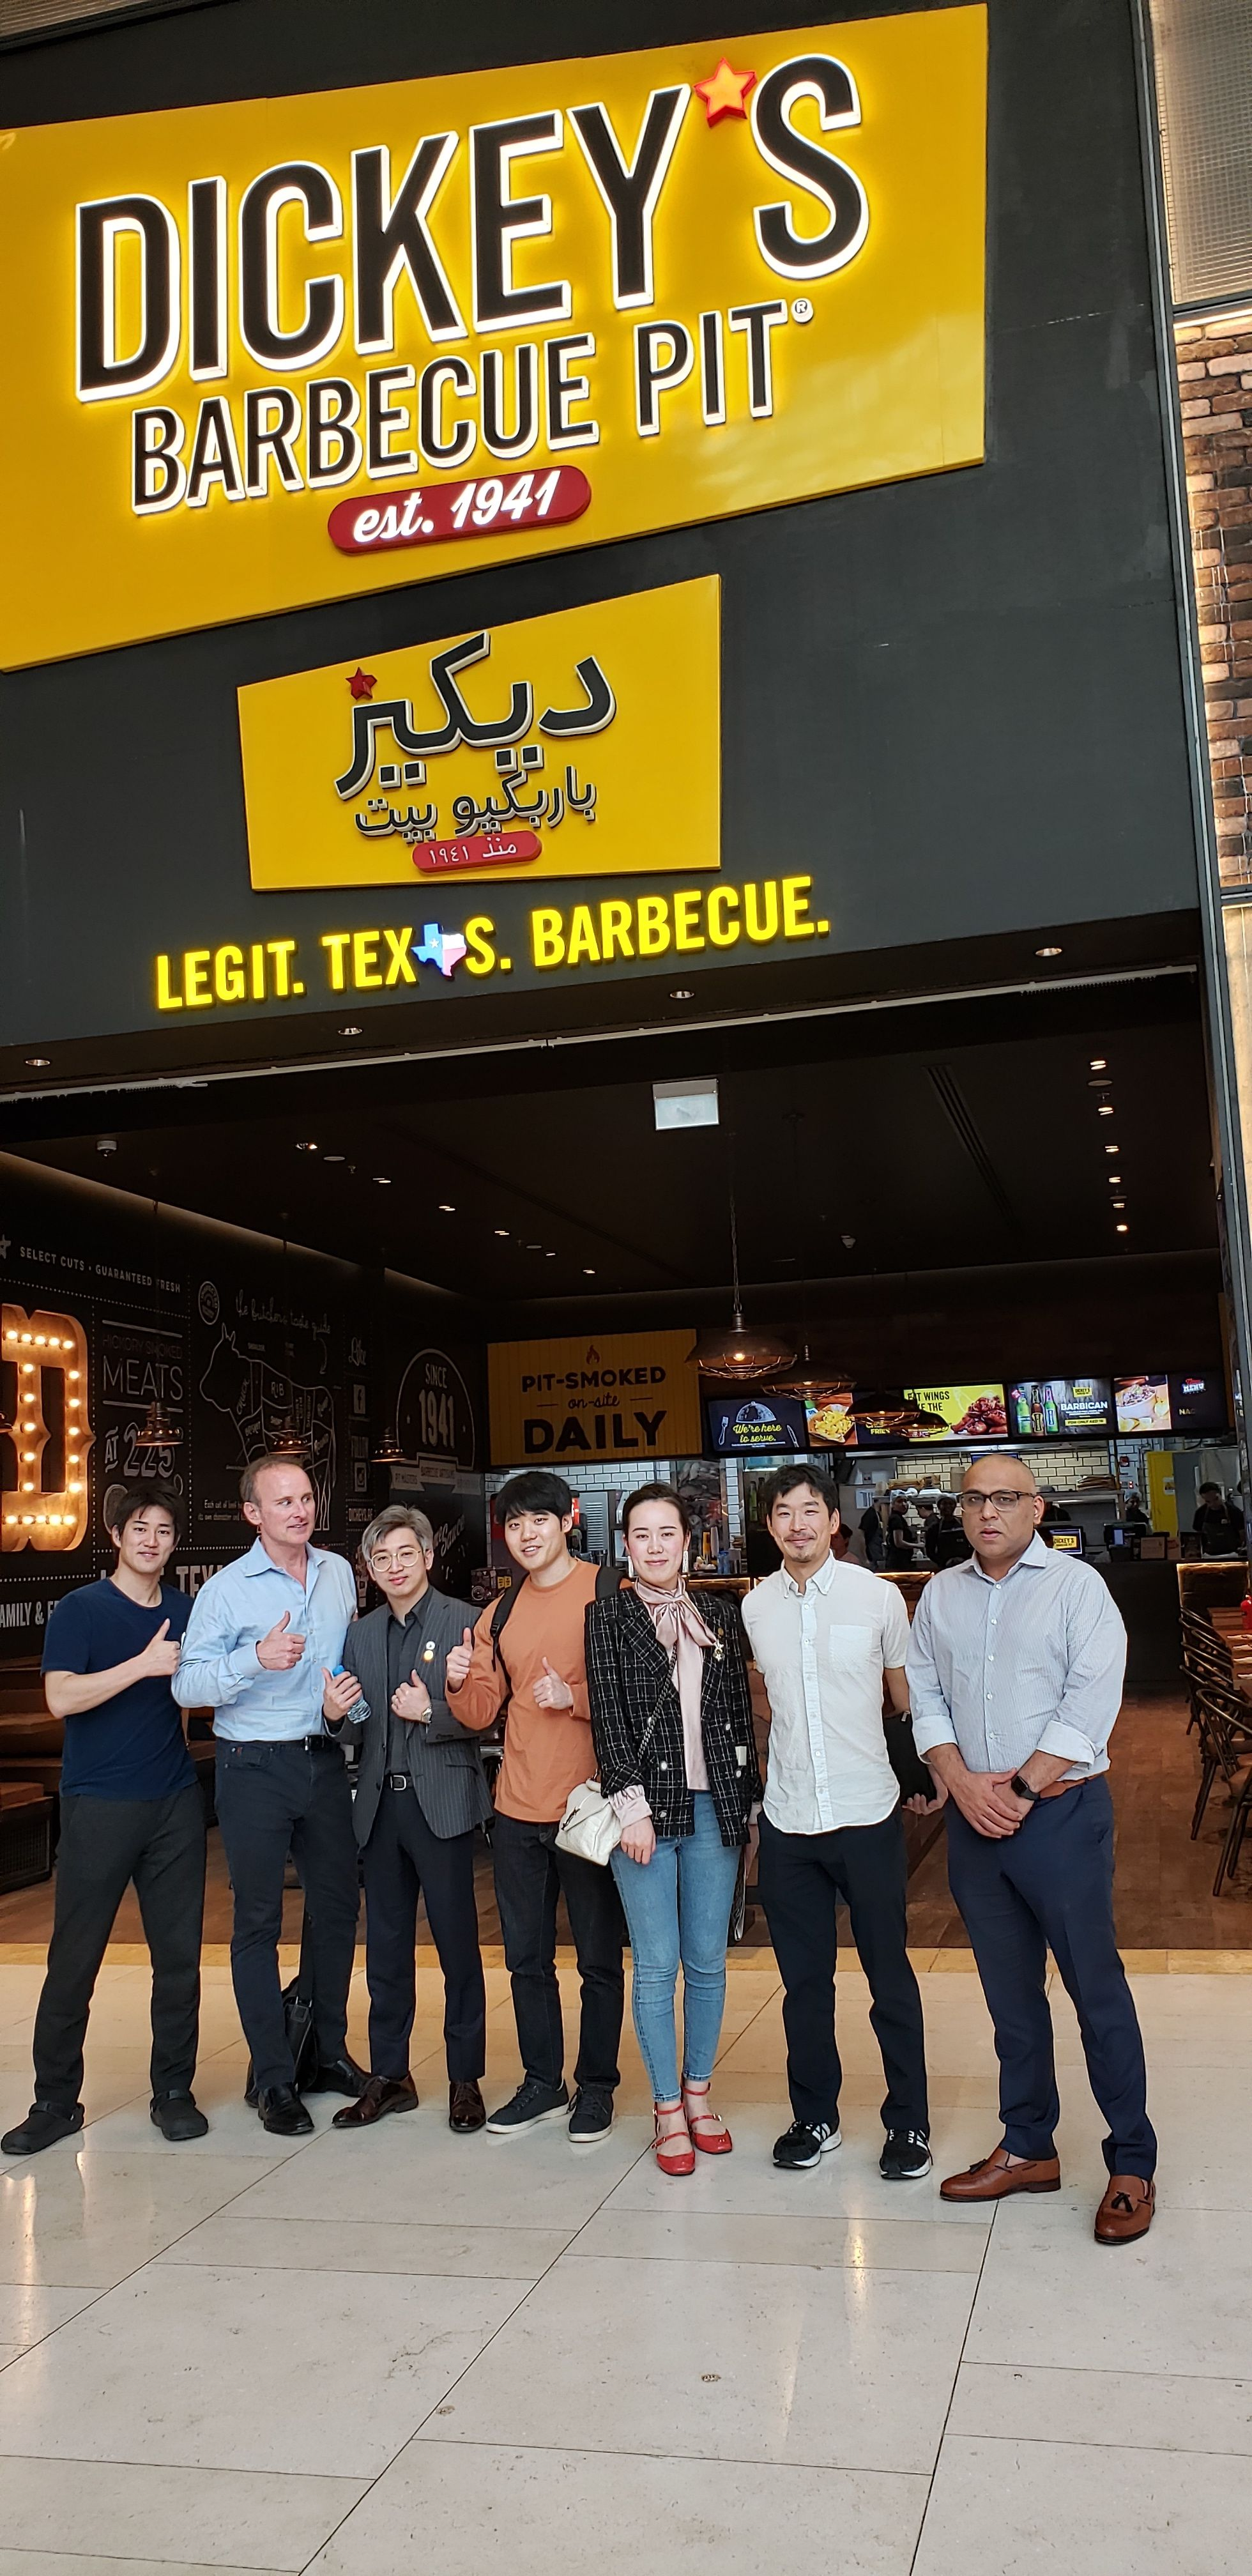 Dickey's Barbecue Pit Enters Key Franchise Agreement and Expands Into Japan